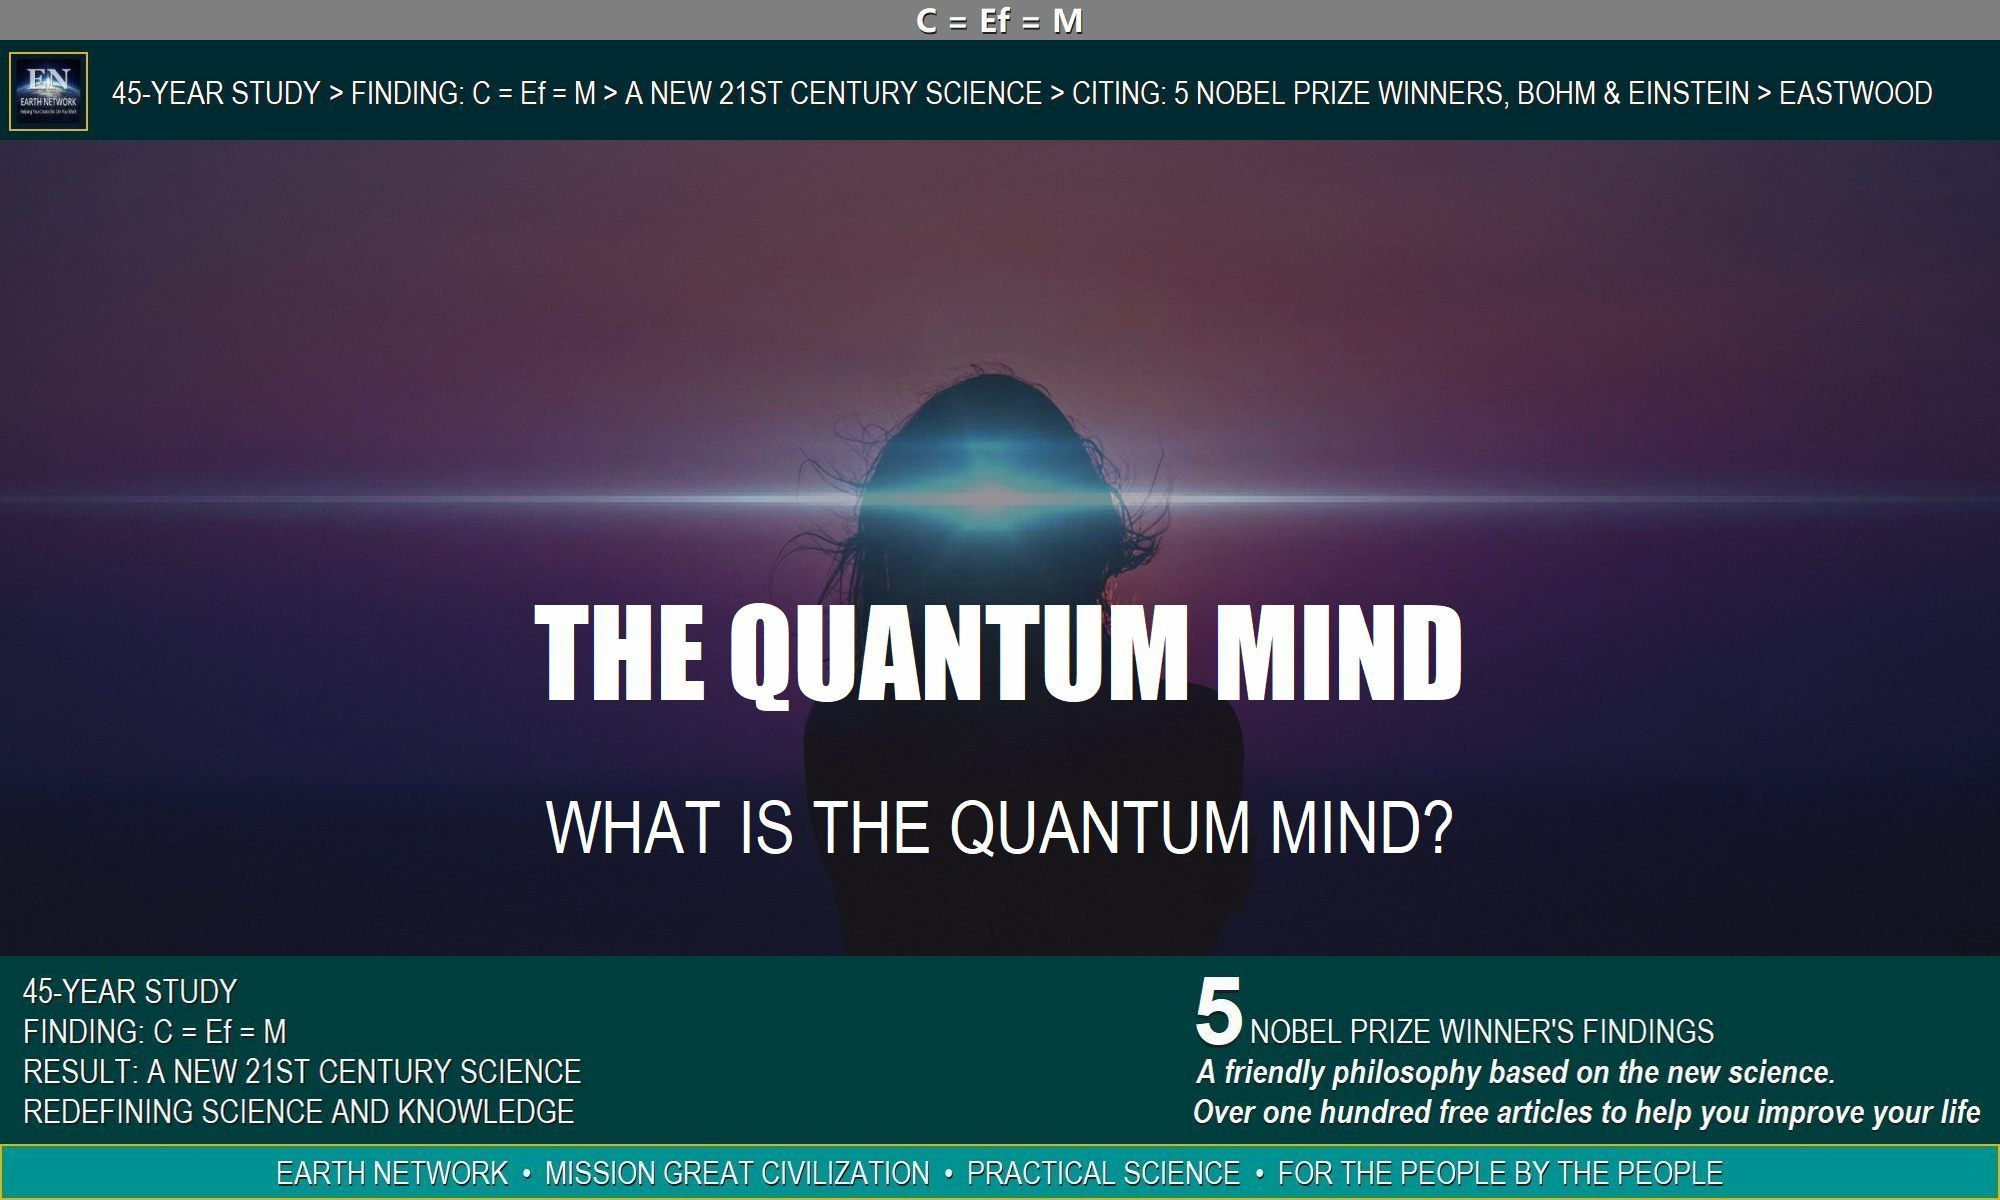 quantum-mind-definition-meaning-what-is-quantum-consciousness-conscious-mind-science-new-paradigm-model